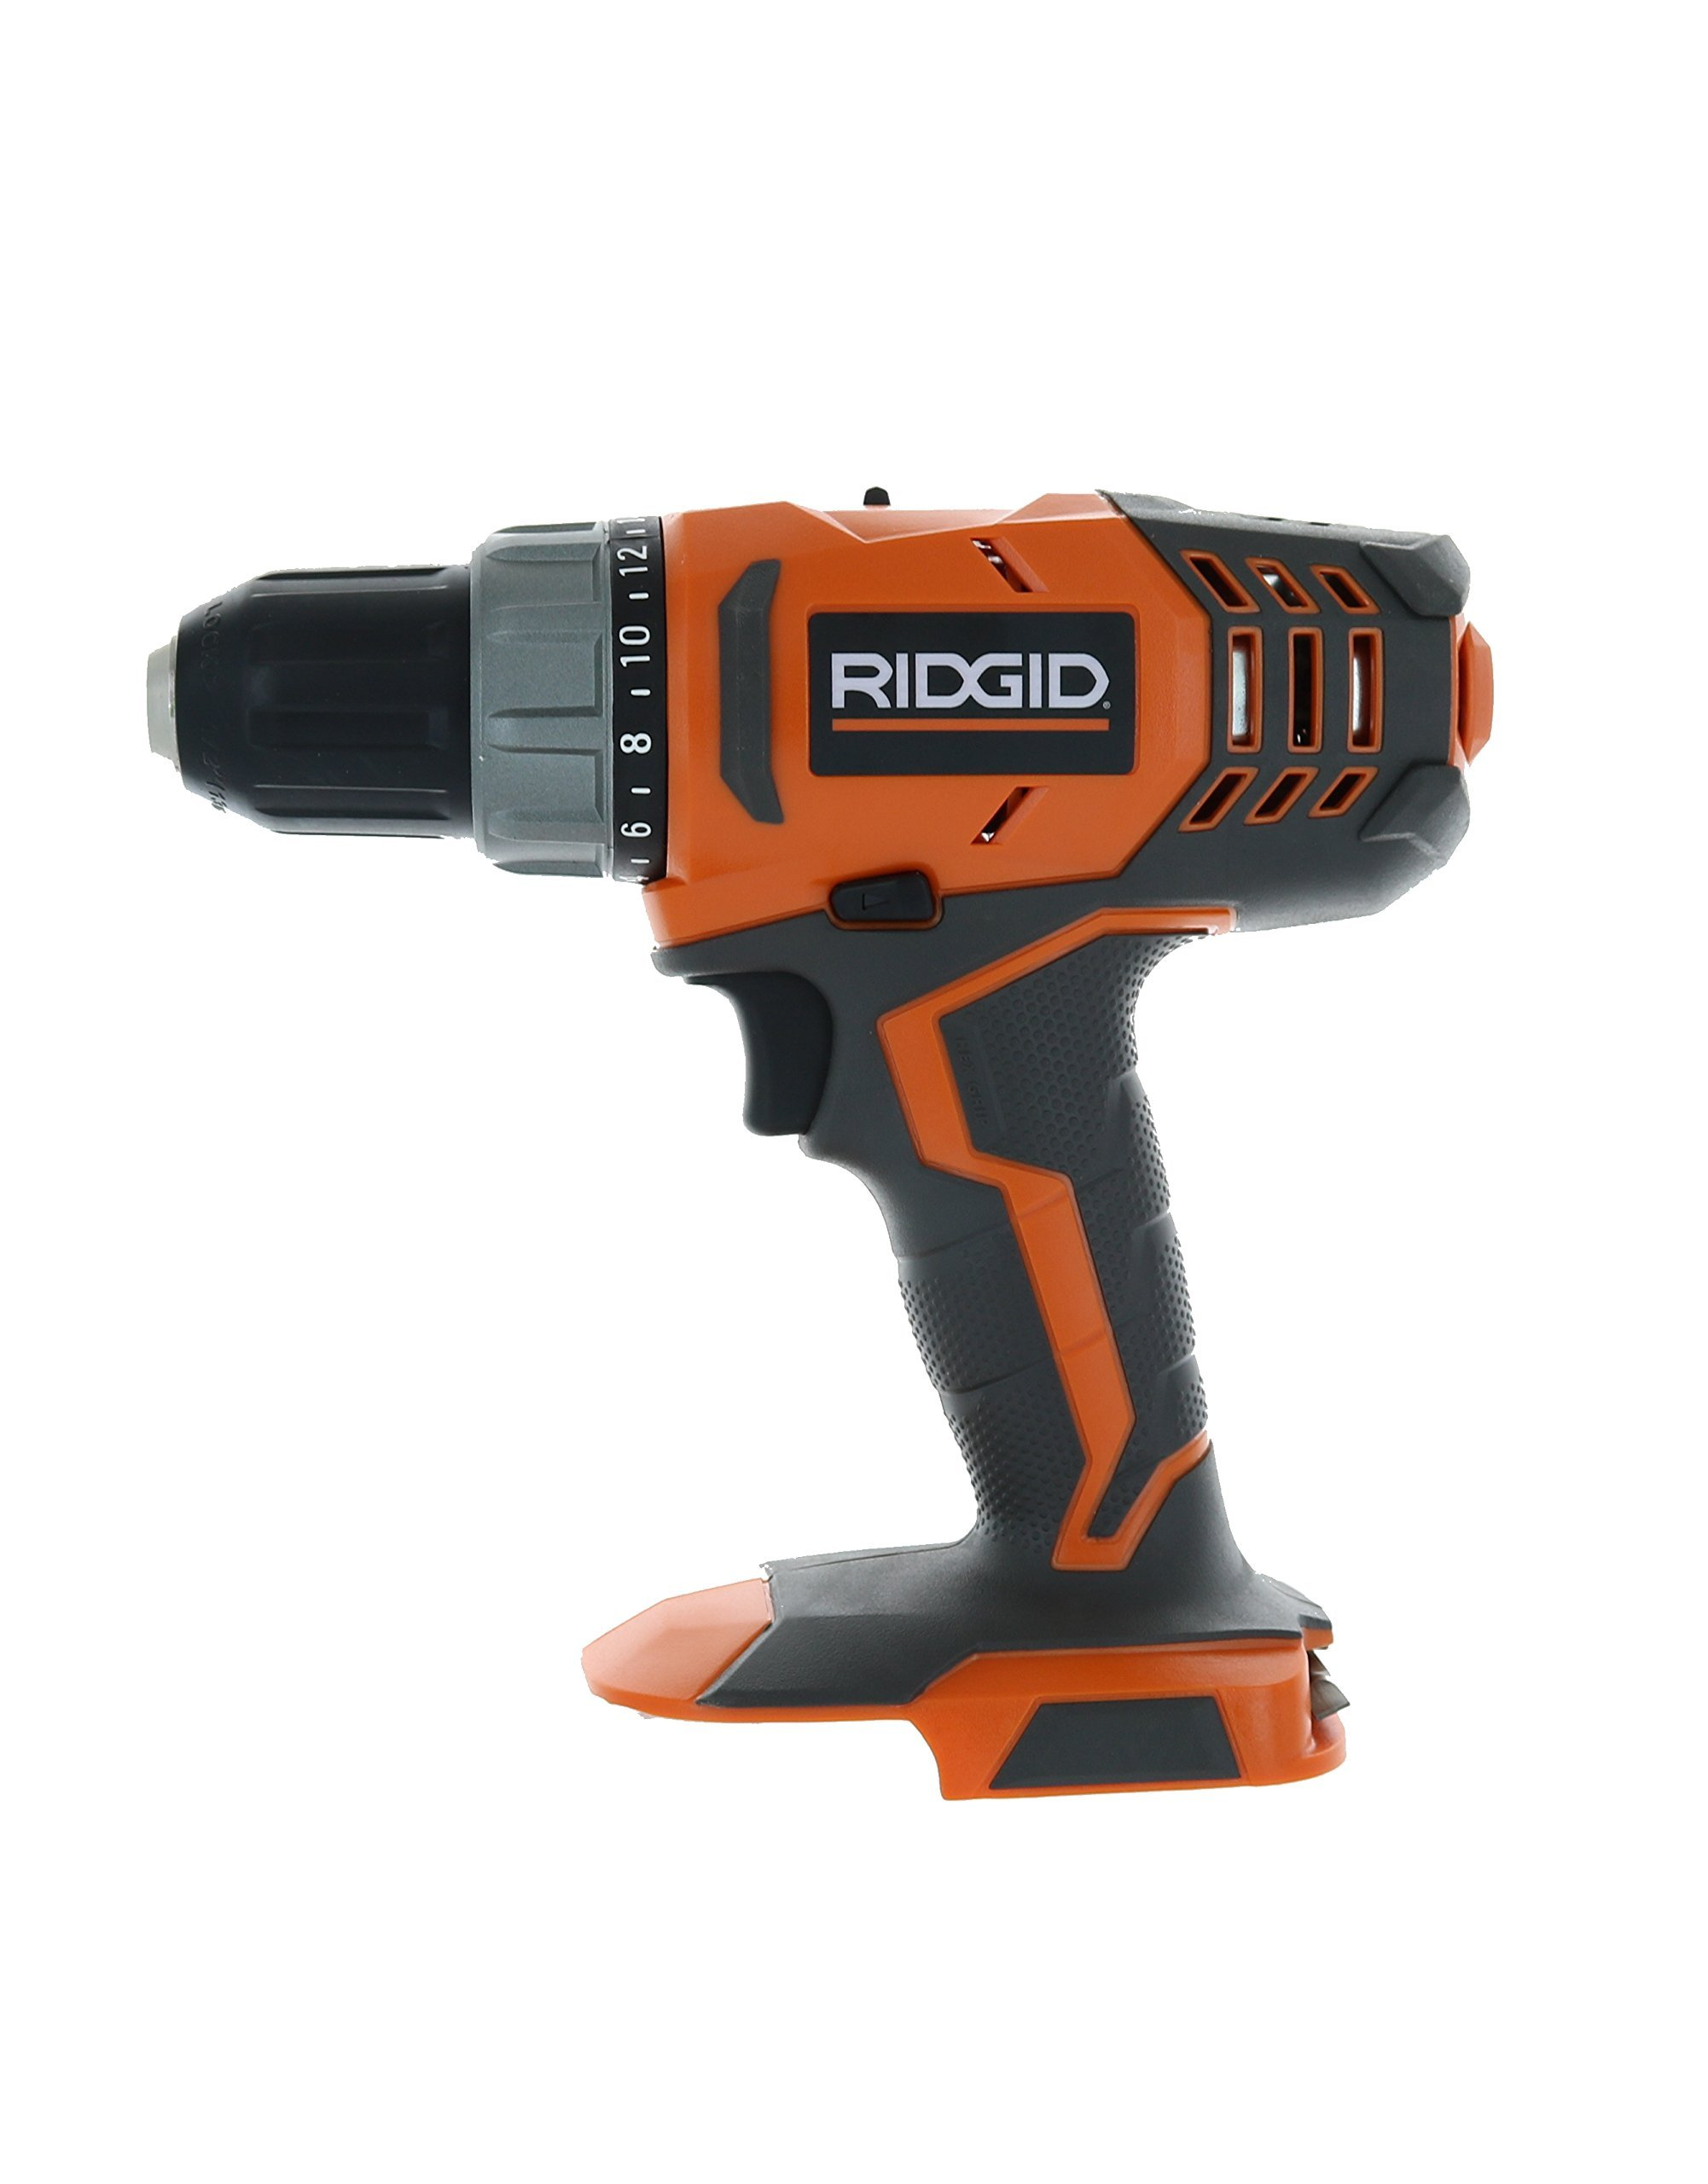 RIDGID R860052 18-Volt Lithium-Ion 1/2 in. Cordless Compact Drill/Driver (Bare Tool Only - Battery and Charger Not Included) (Certified Refurbished)